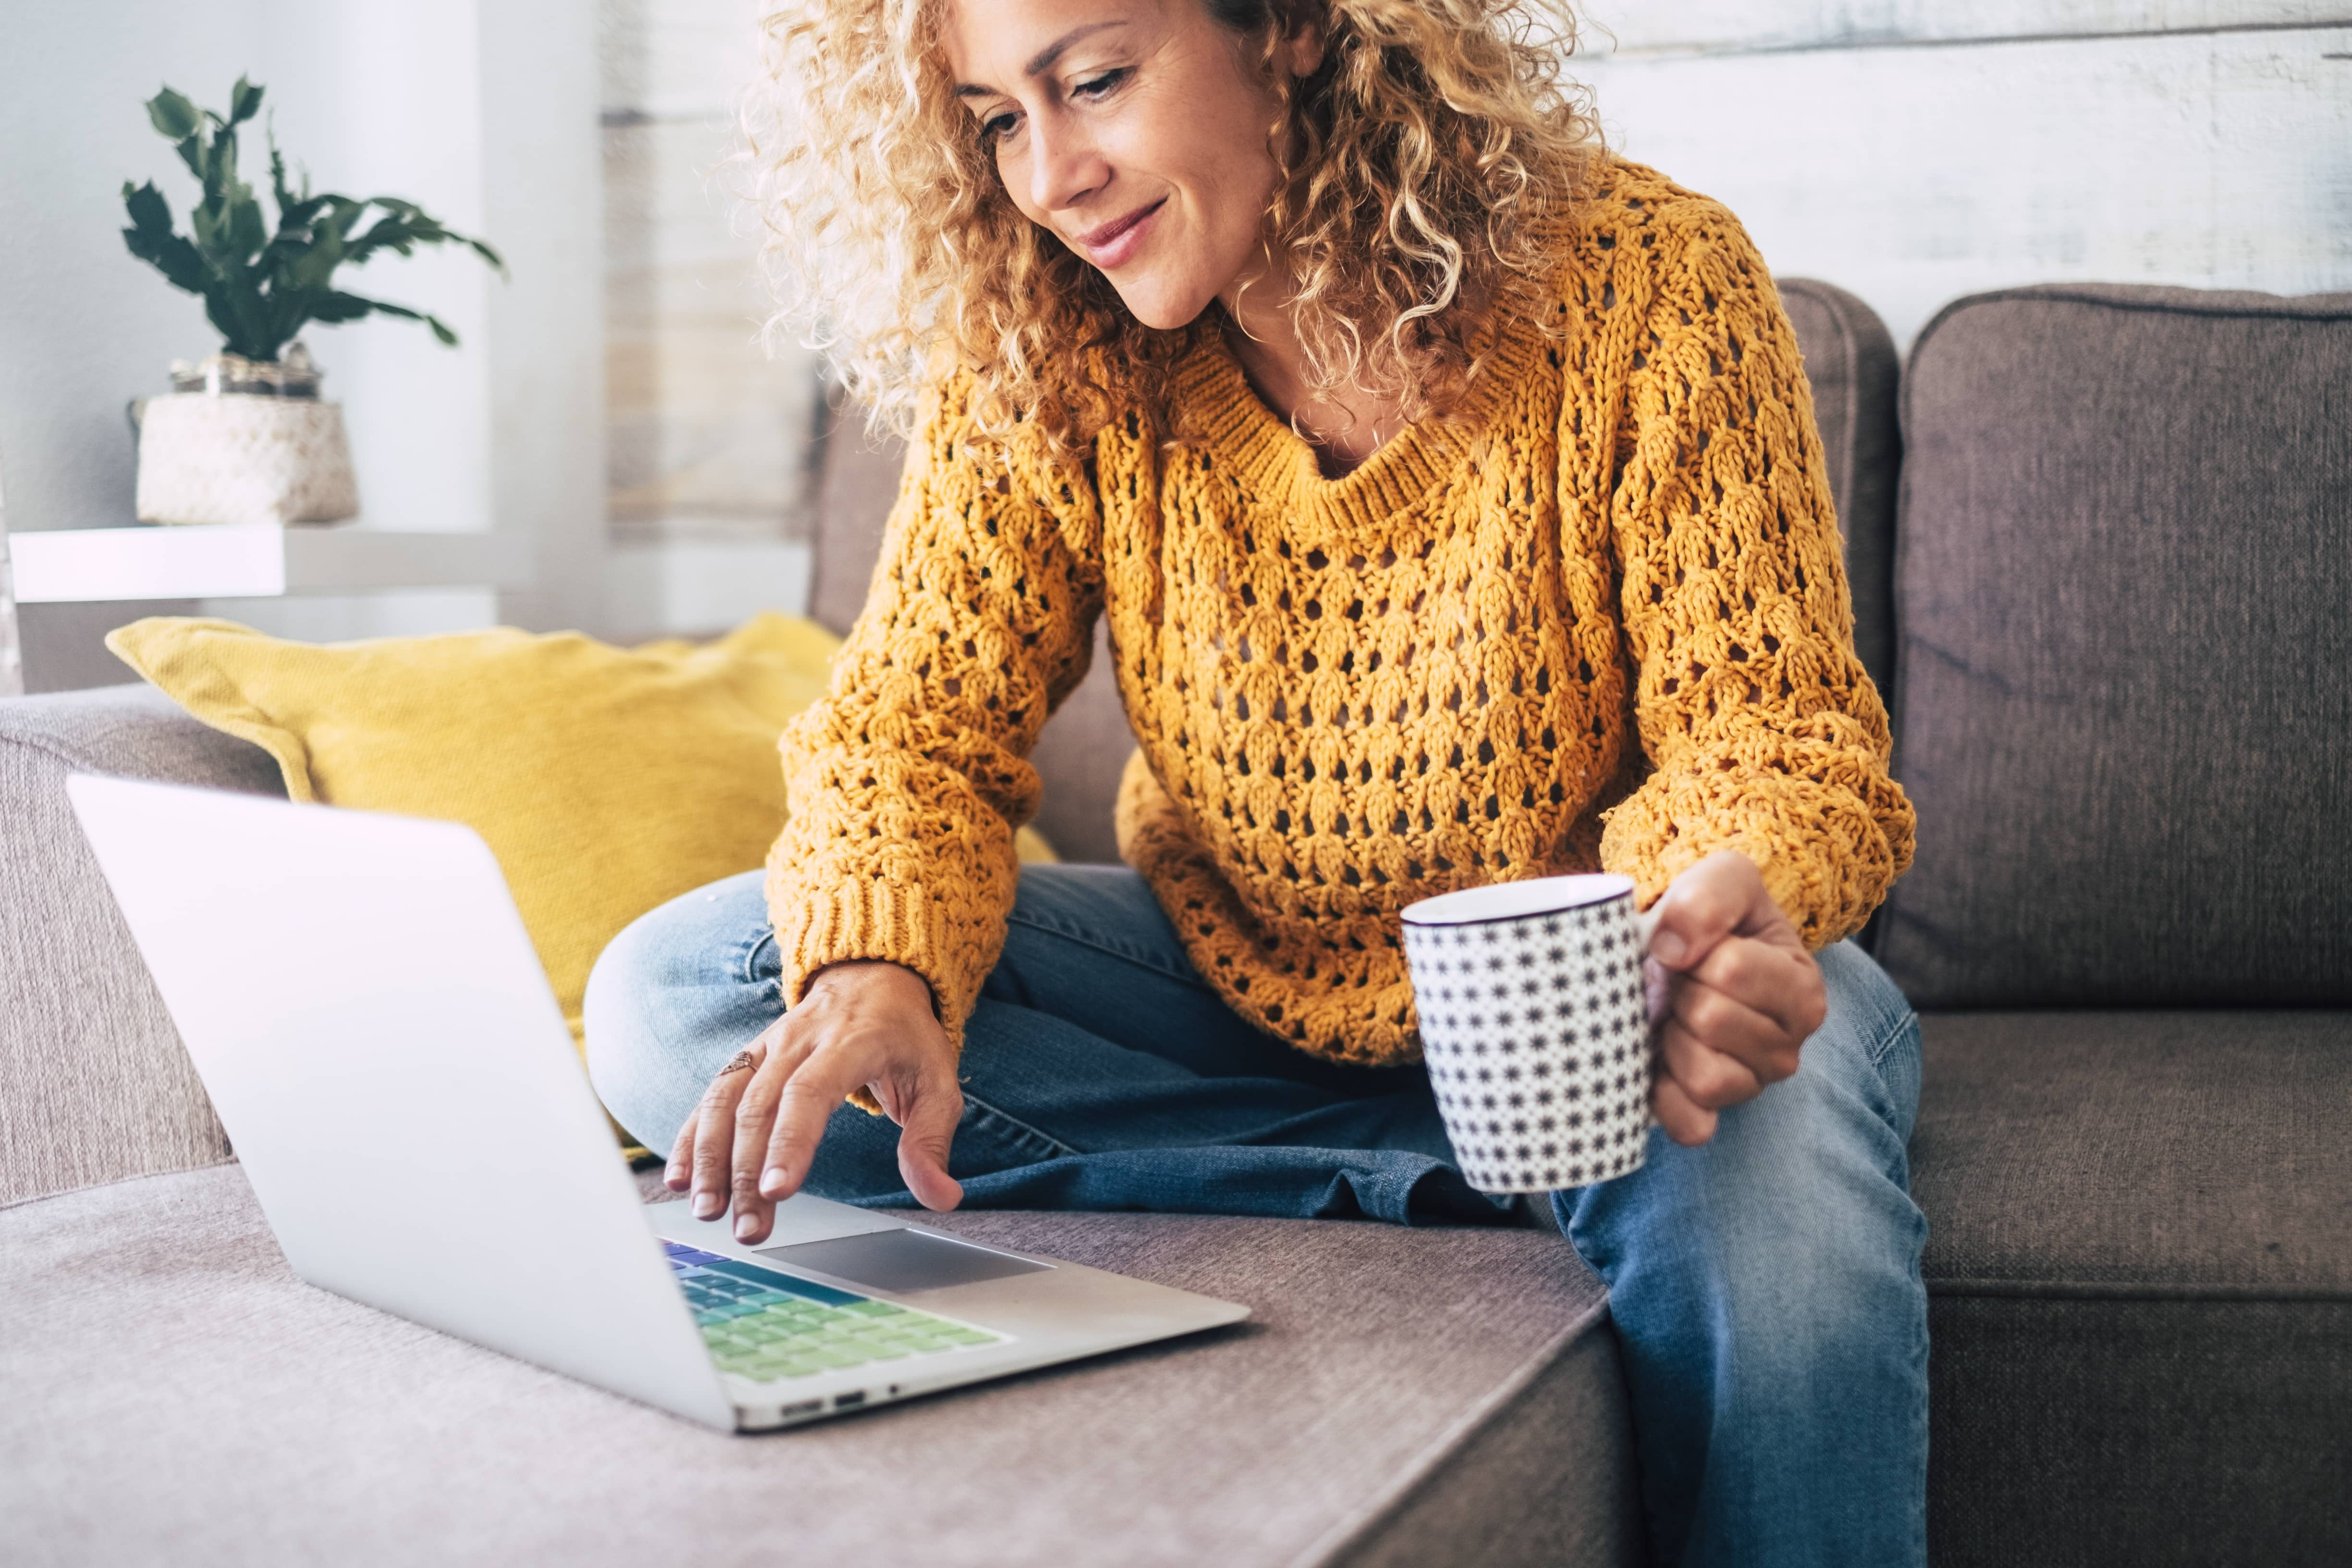 Woman procrastinating by surfing the internet